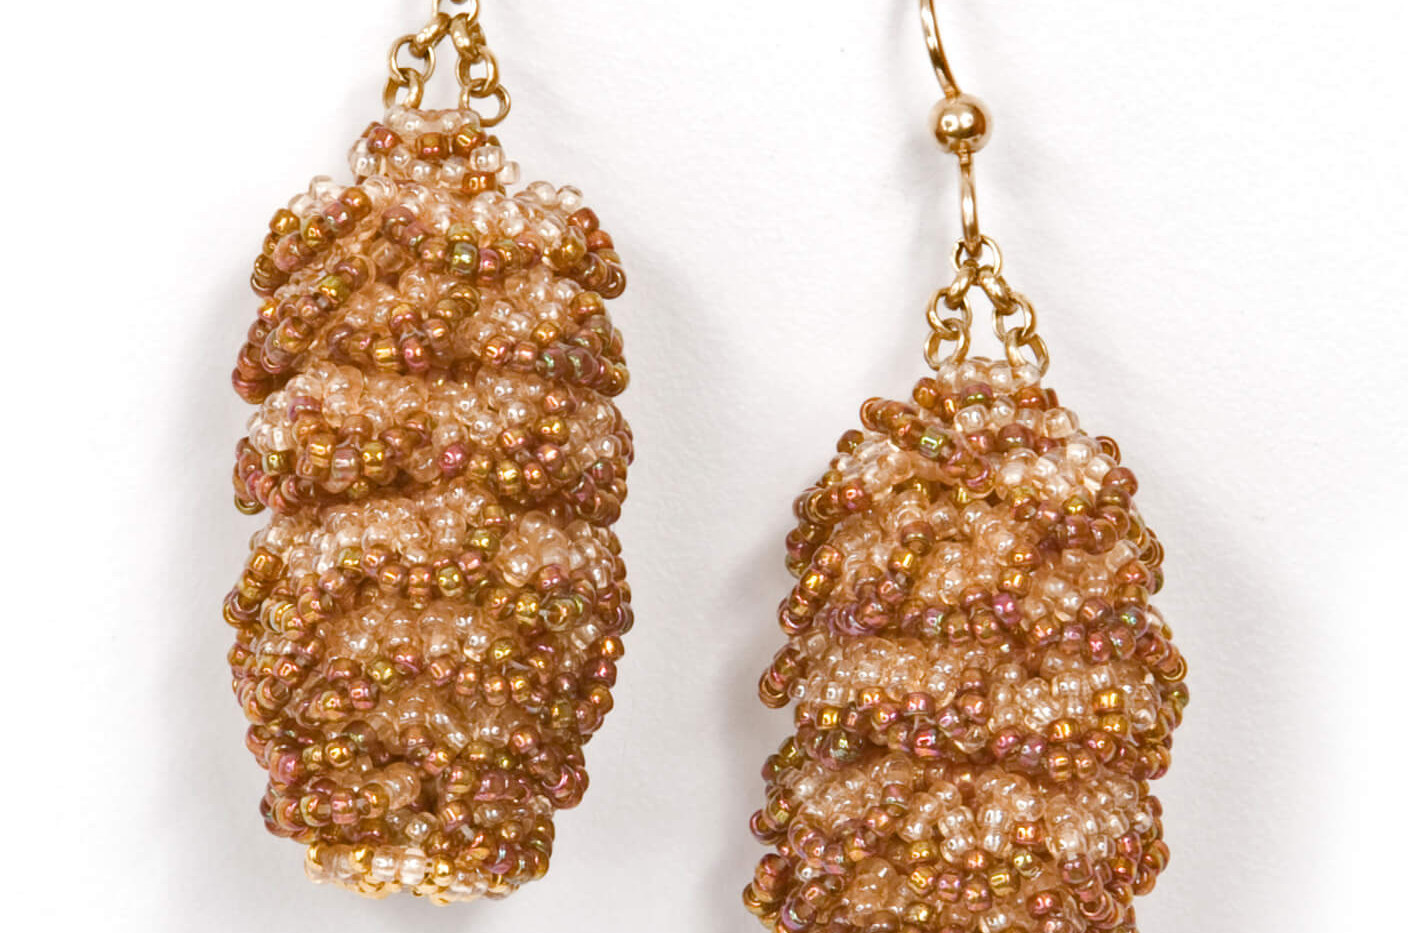 Pining Earrings in Topaz and Peach